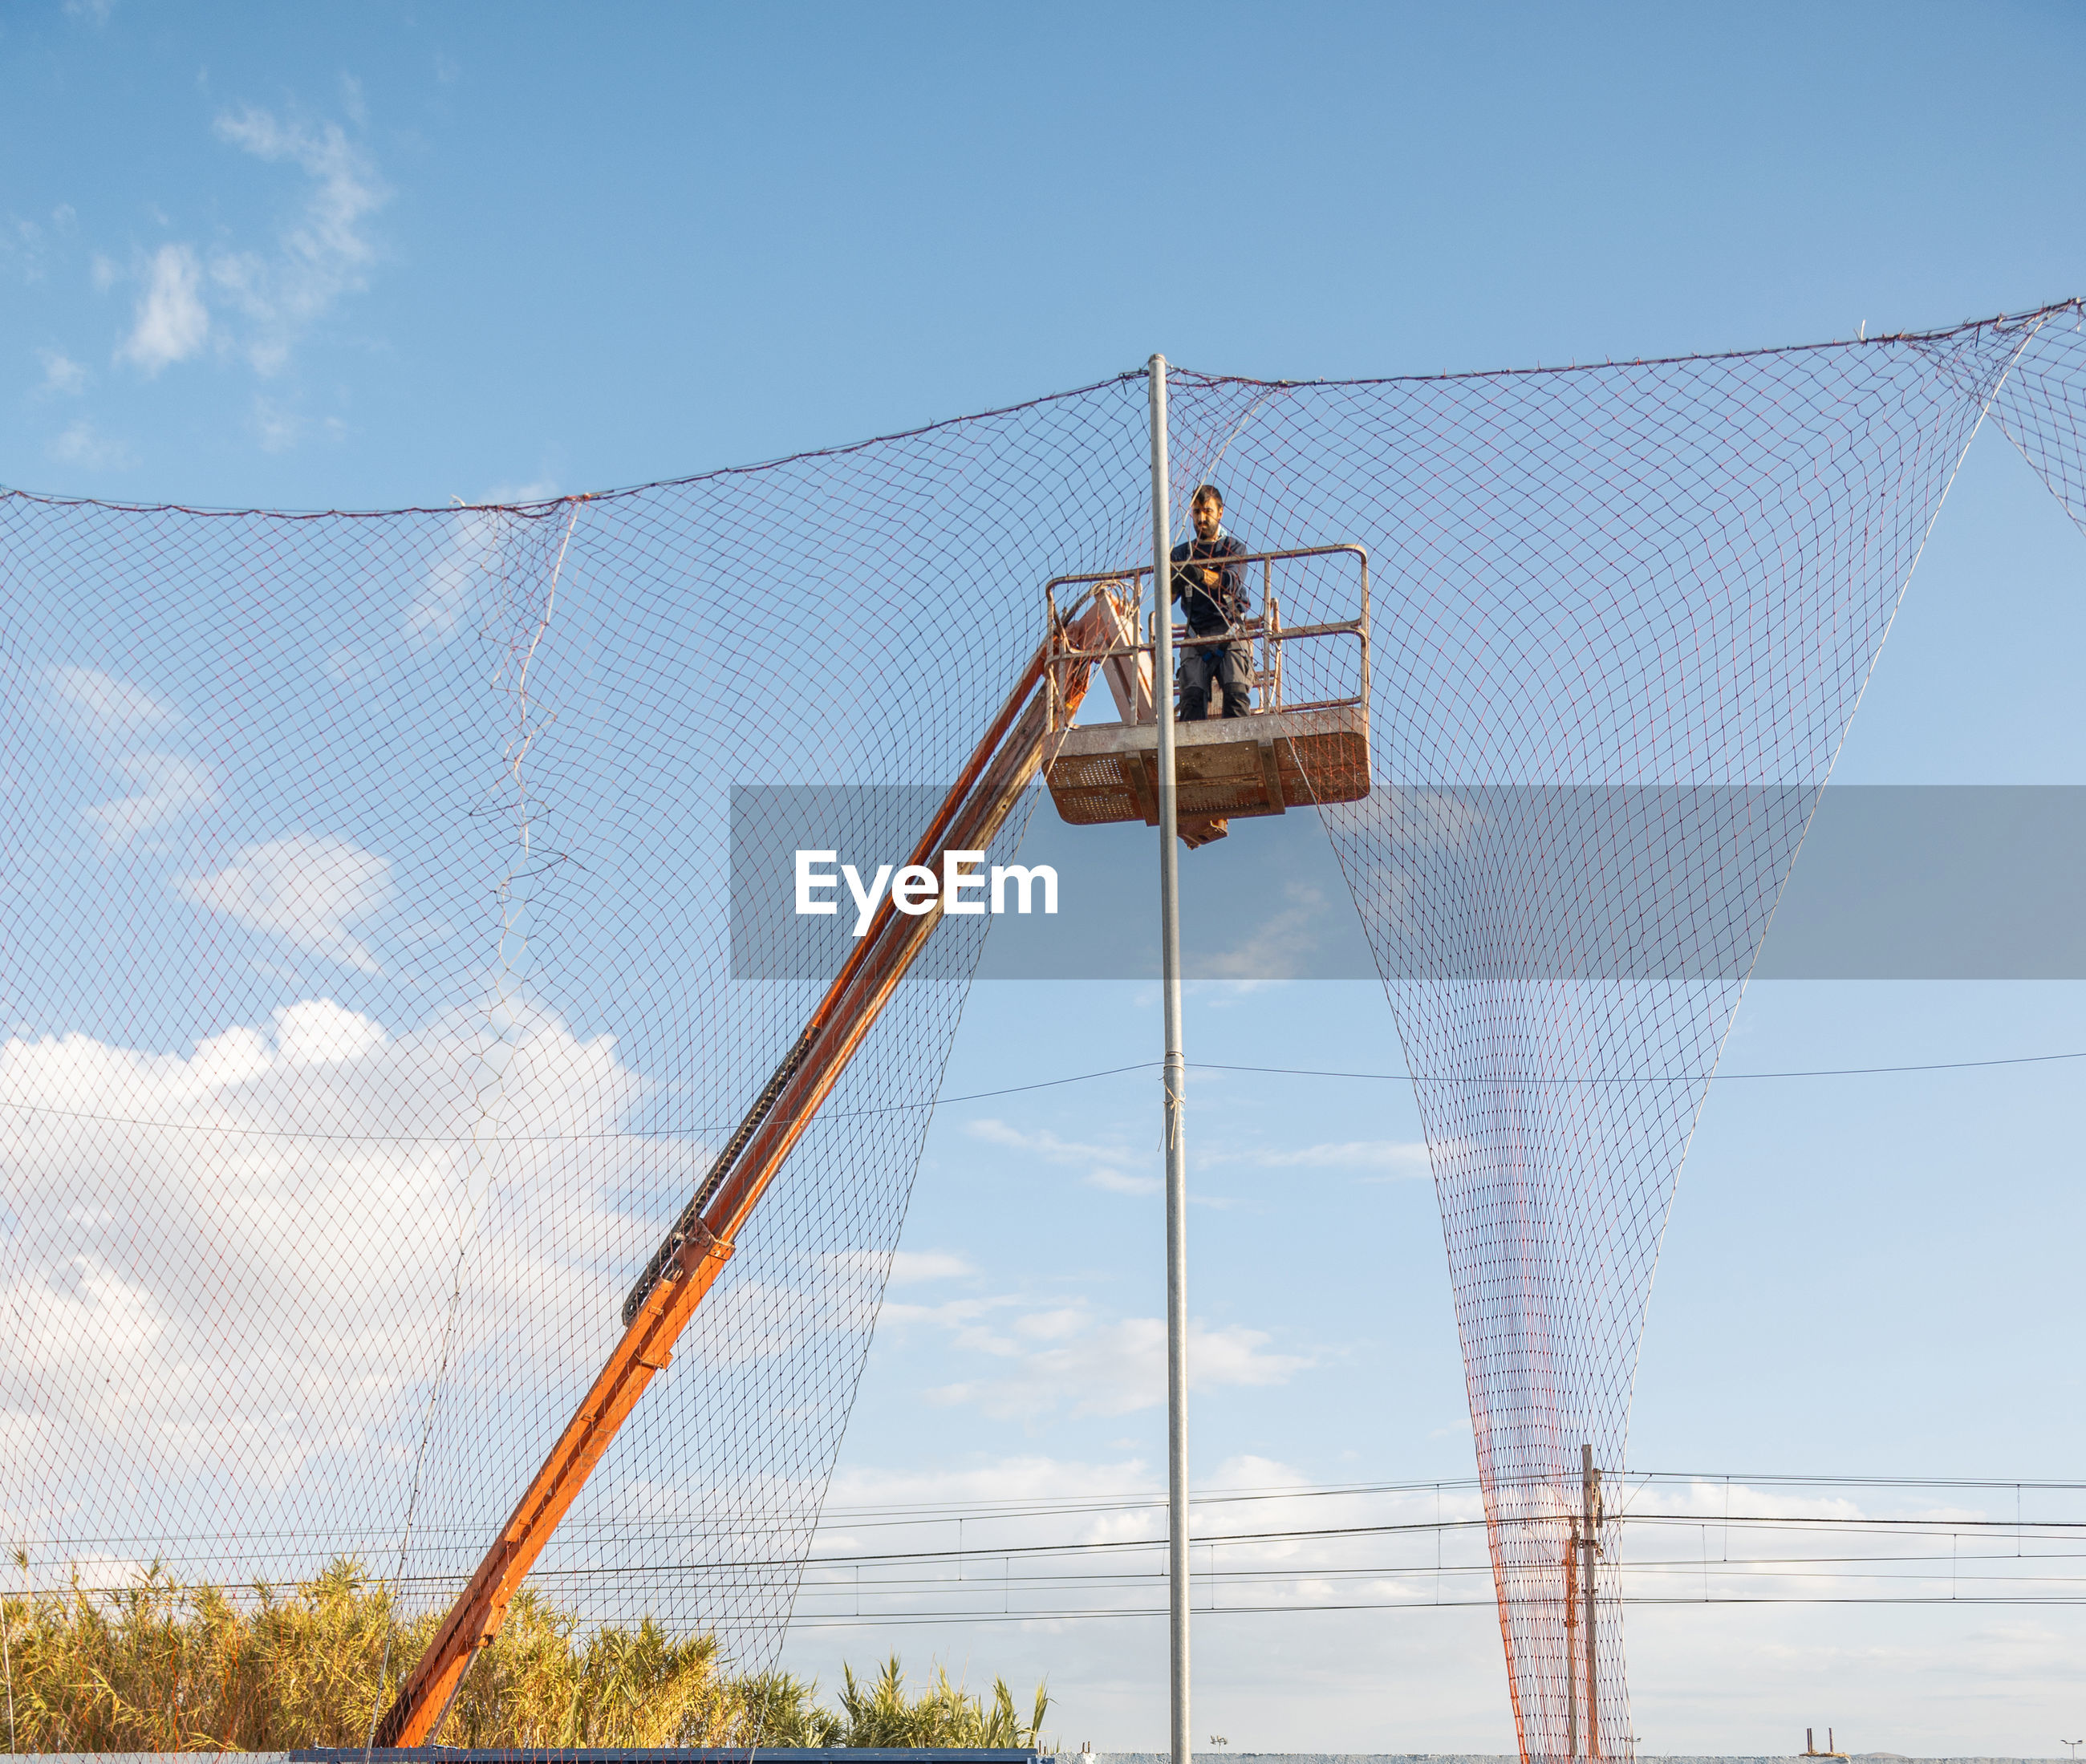 Low angle view of man on crane against sky